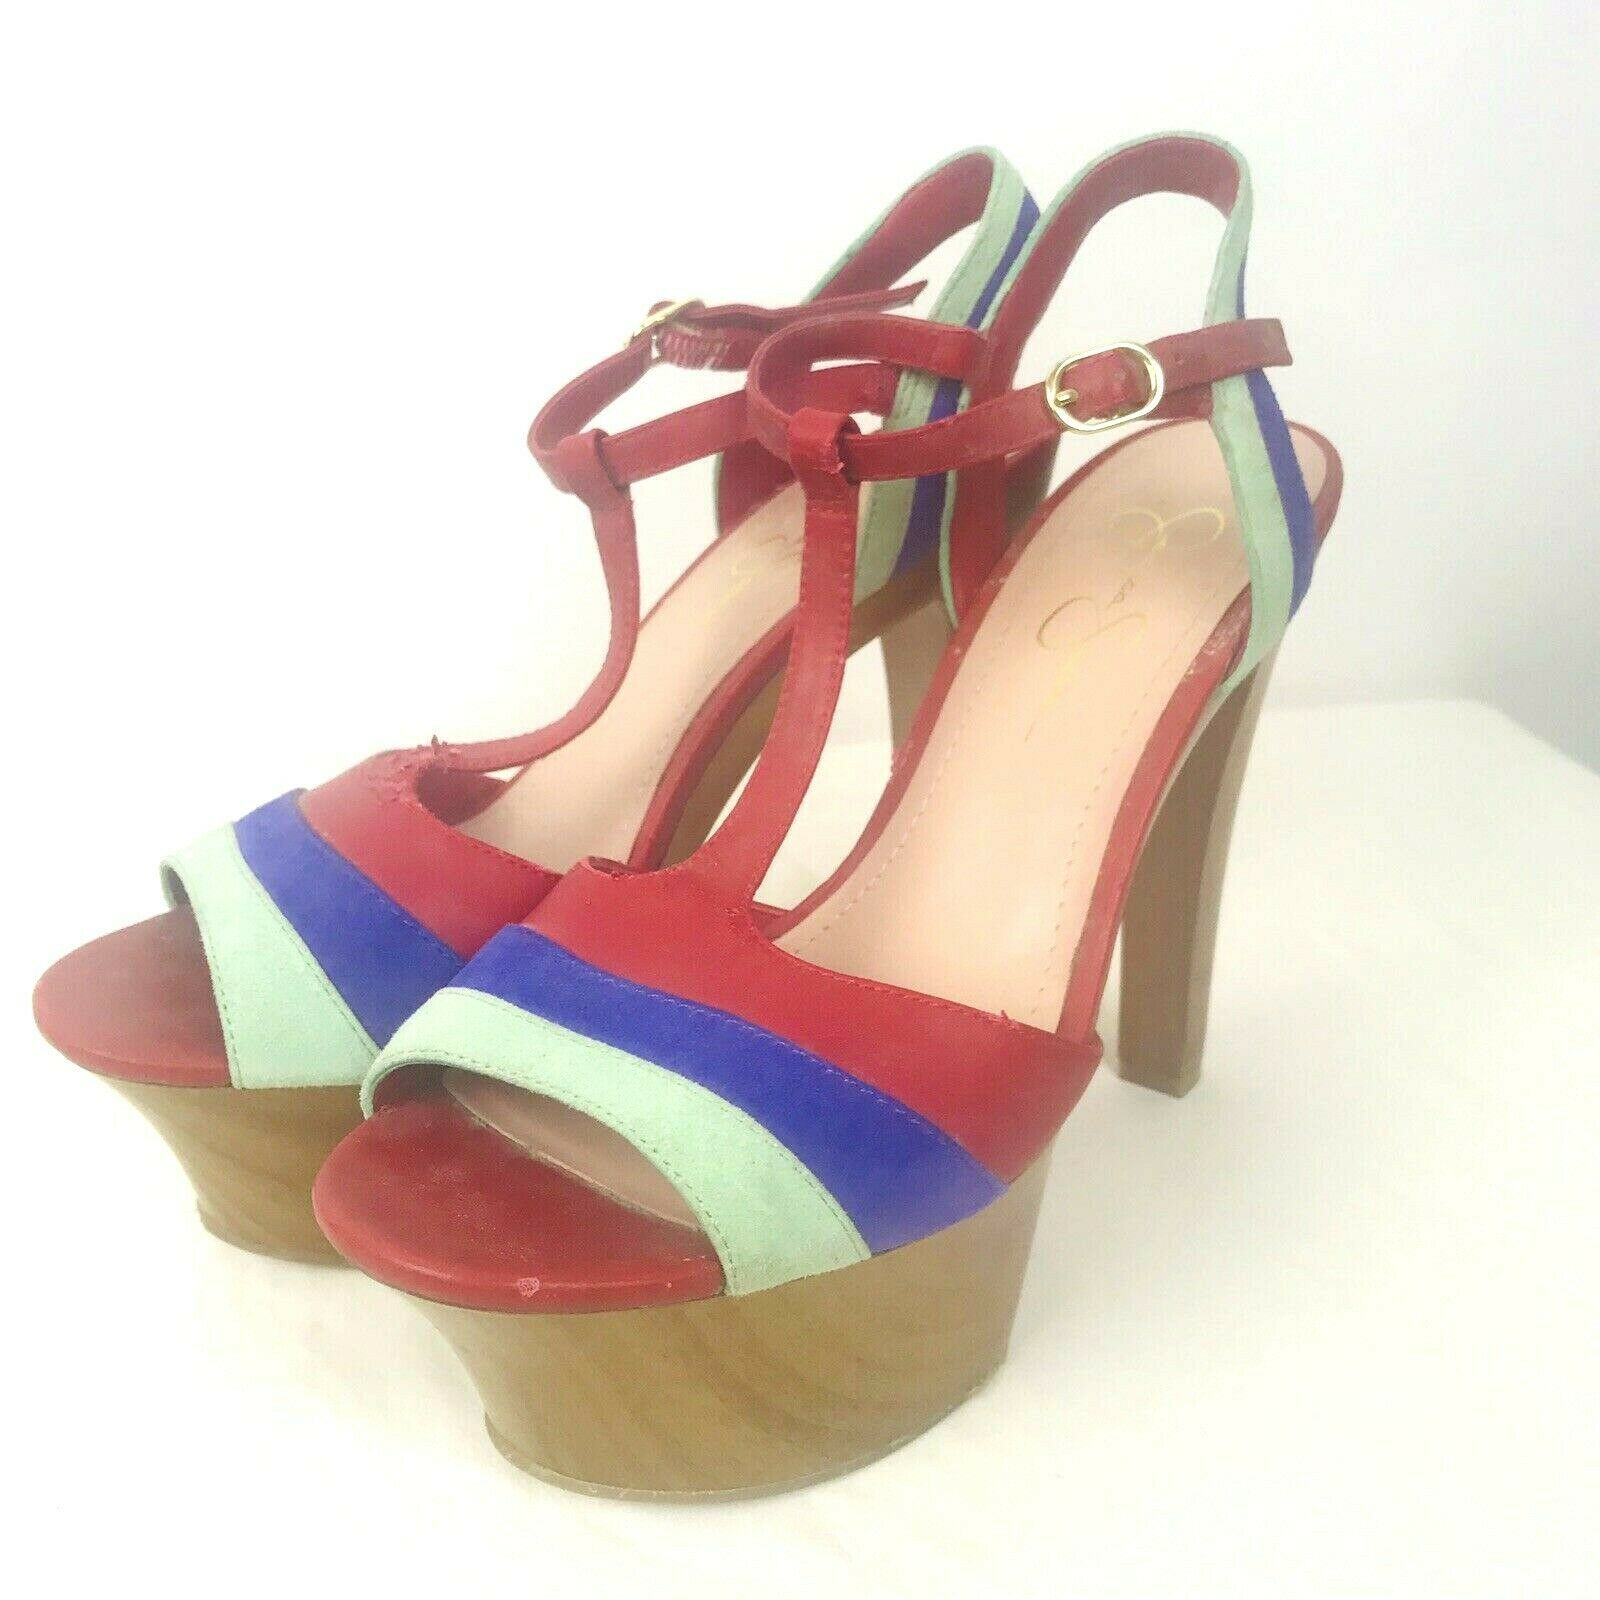 Jessica Simpson Red Blue Suede/Leather High Heel Platform Wood Peep Toe Sandal 8 - $27.07